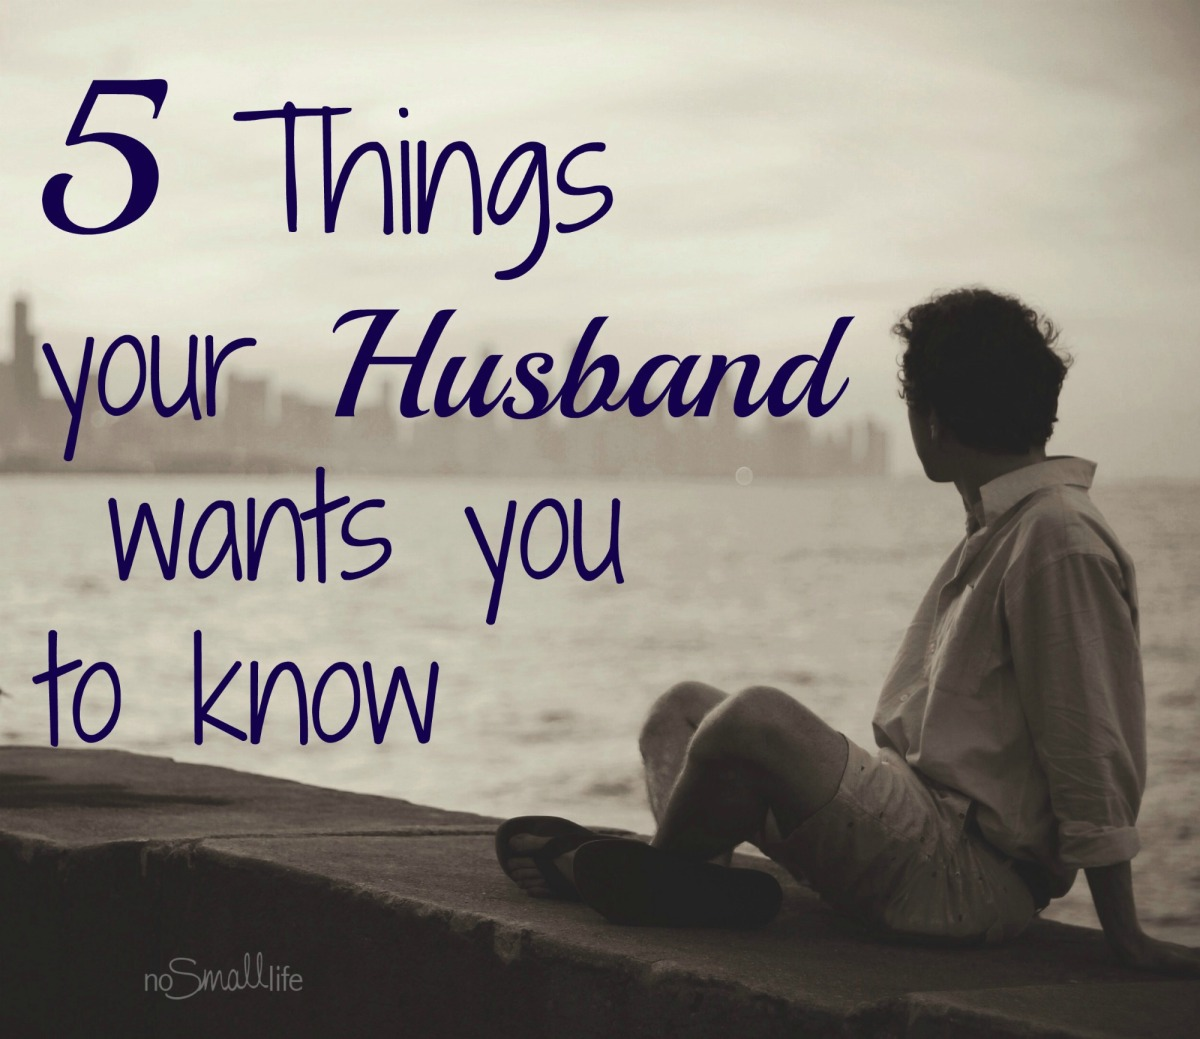 5 Things Your Husband Wants You to Know